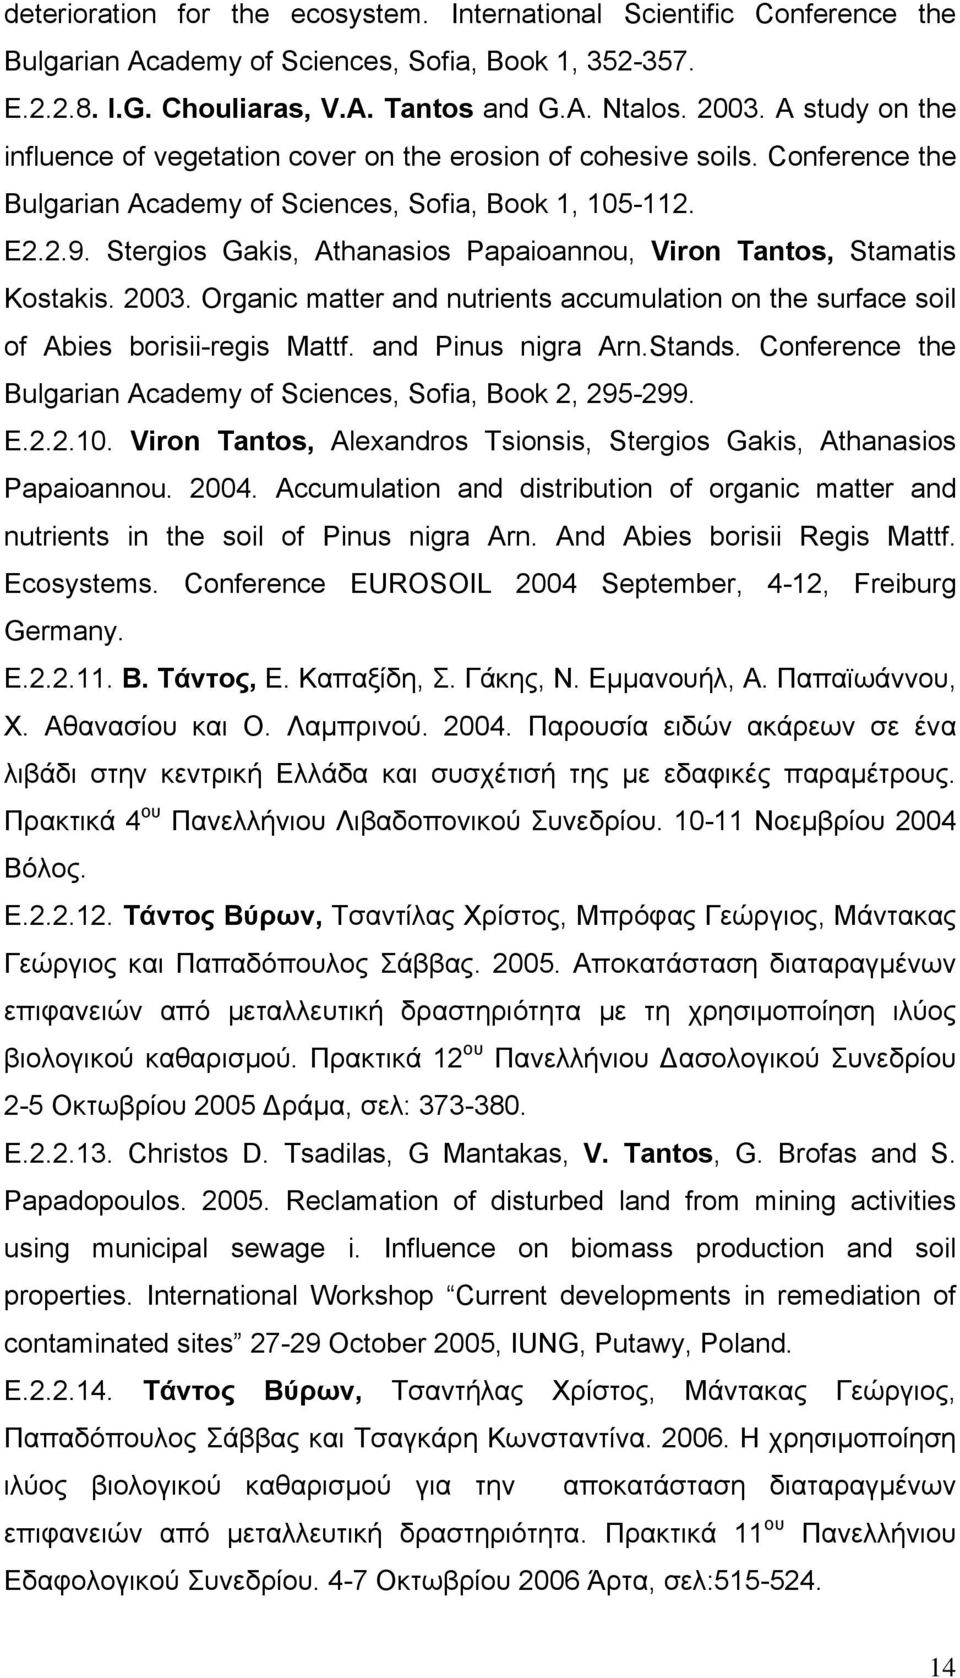 Stergios Gakis, Athanasios Papaioannou, Viron Tantos, Stamatis Kostakis. 2003. Organic matter and nutrients accumulation on the surface soil of Abies borisii-regis Mattf. and Pinus nigra Arn.Stands.